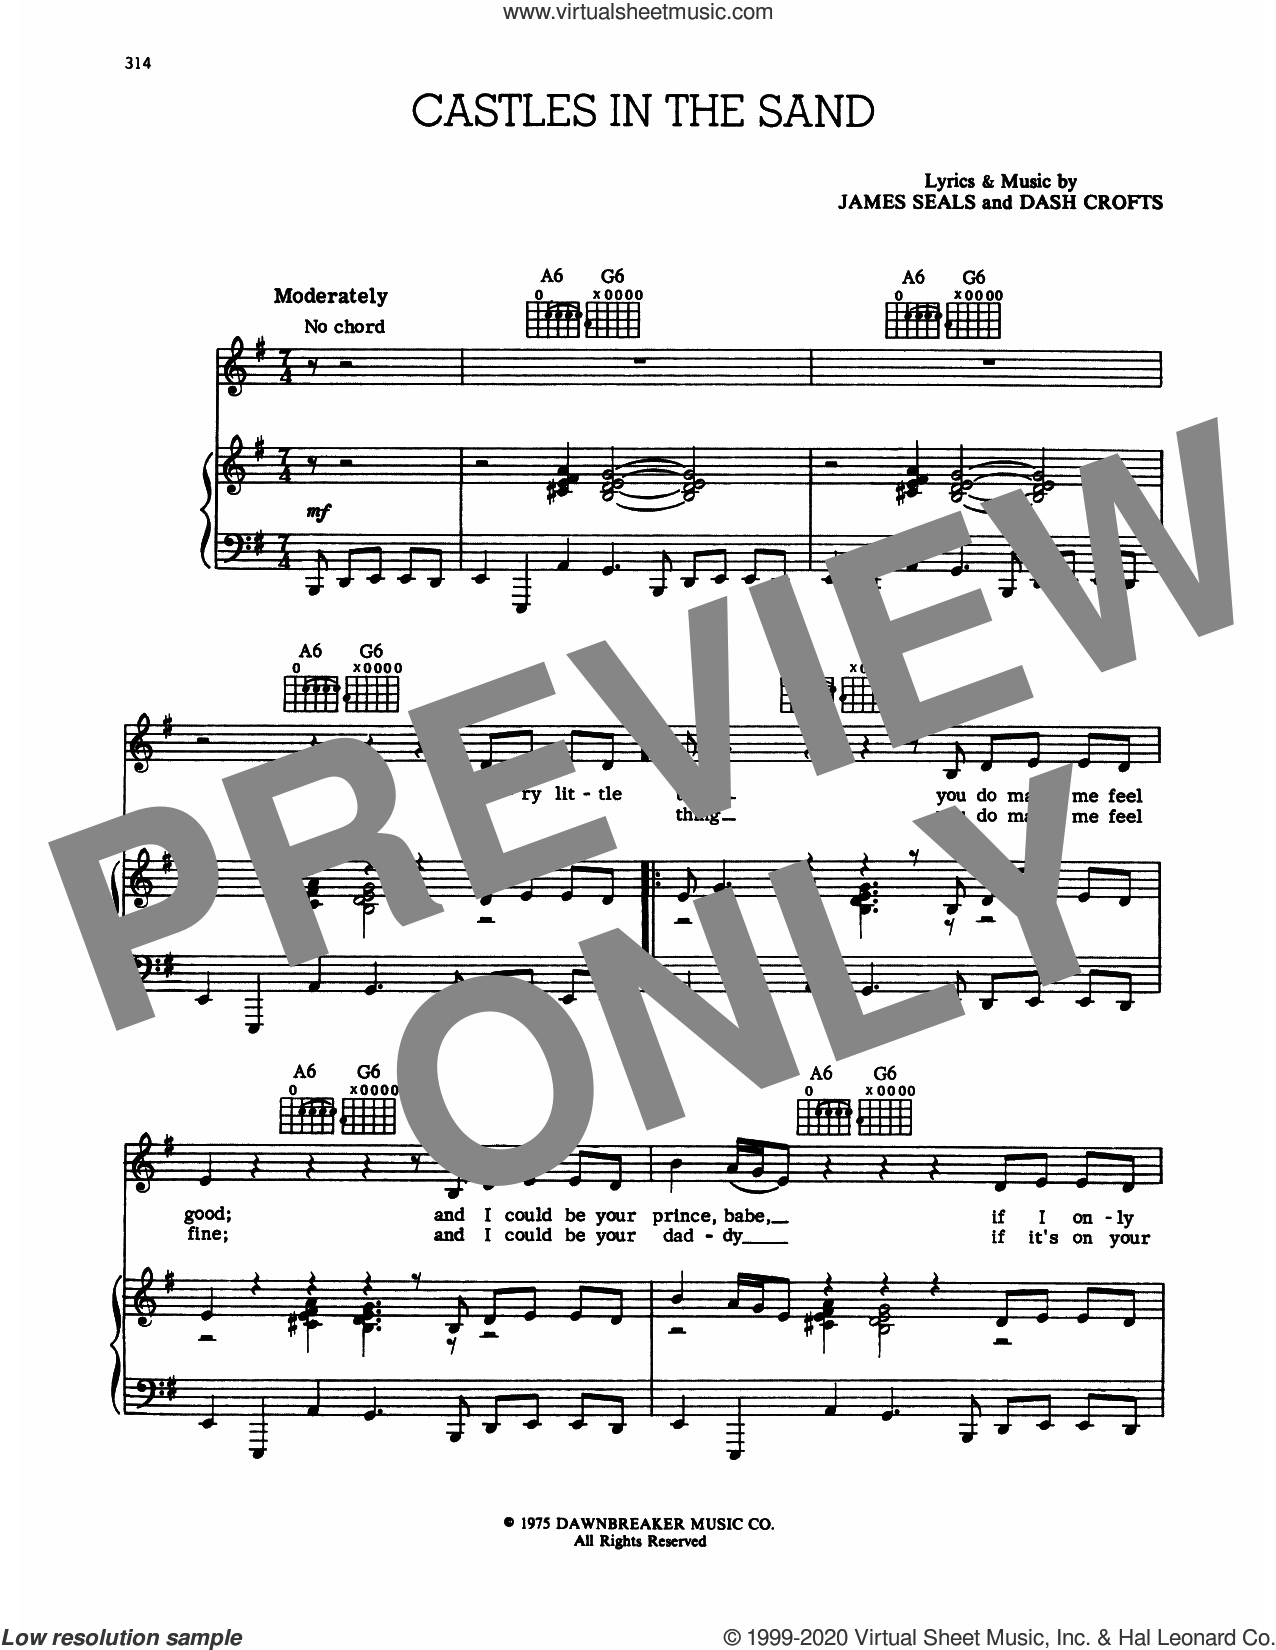 Castles In The Sand sheet music for voice and piano by Seals and Crofts, Dash Crofts and James Seals, intermediate skill level